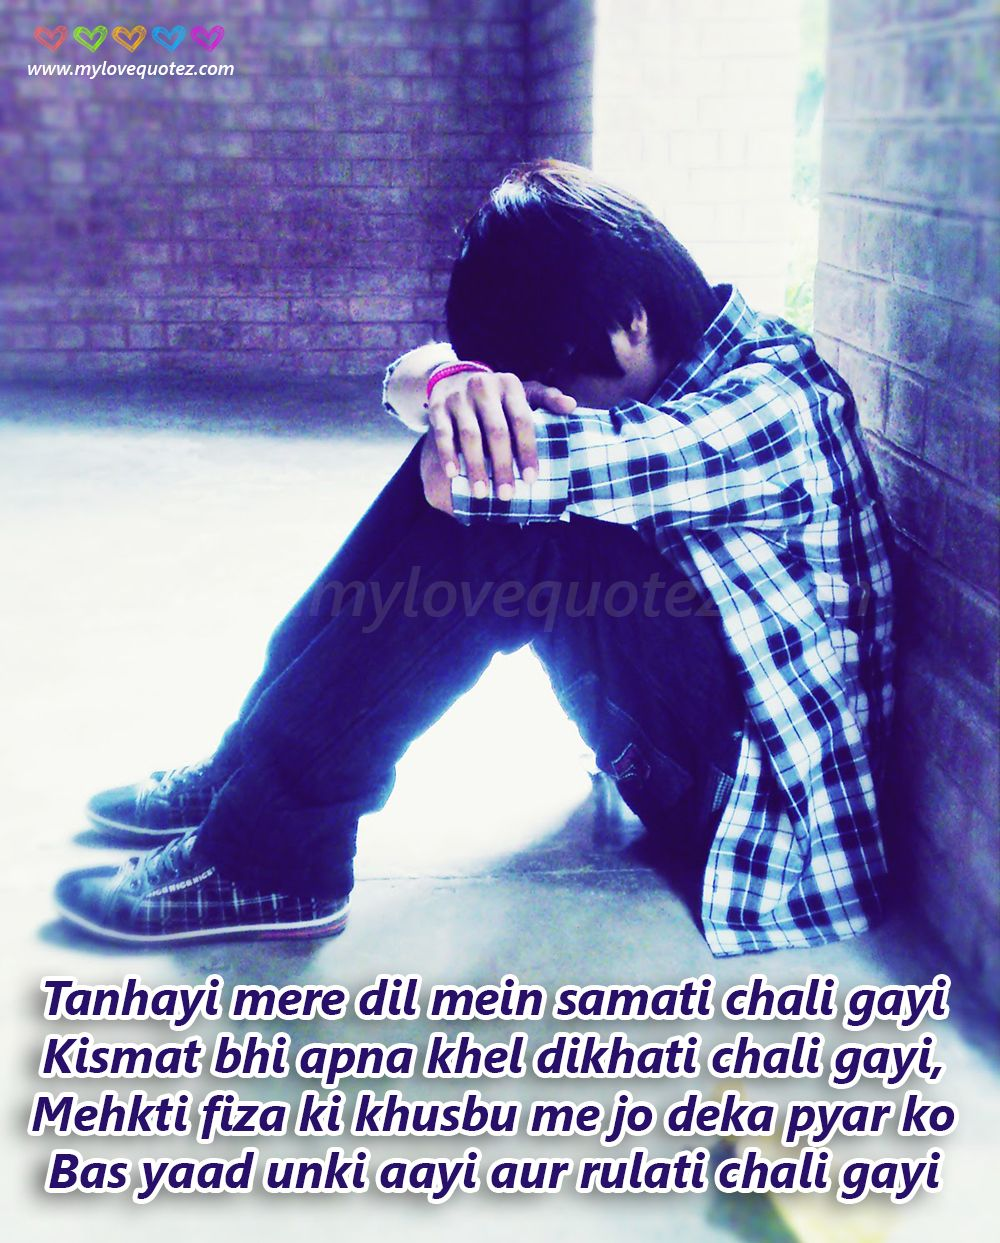 lover boy crying wallpaper images photo